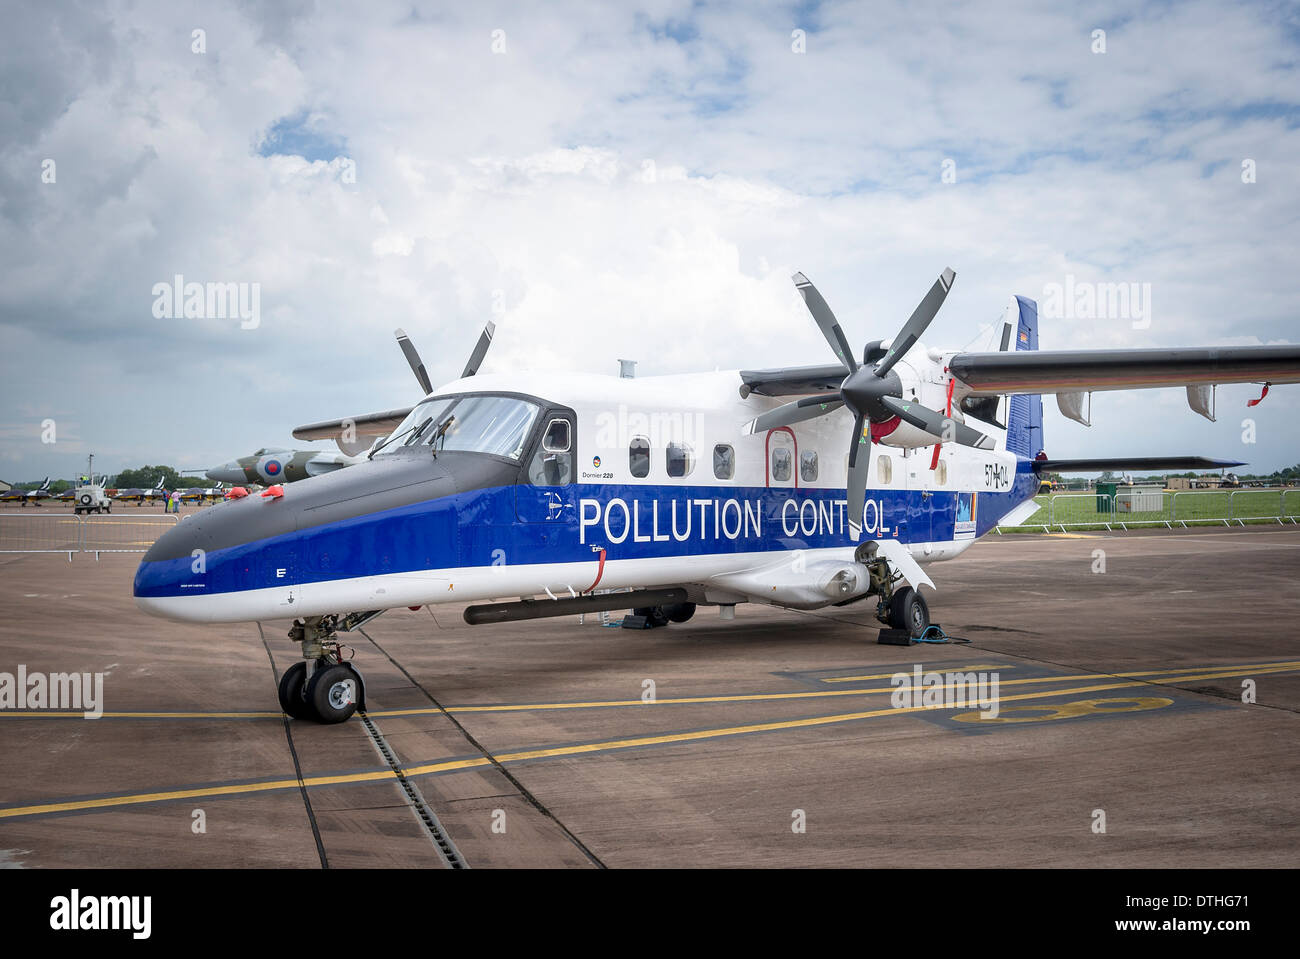 POLLUTION CONTROL Dorner 228 twin-engine patrol aircraft at a British airshow 2012 - Stock Image